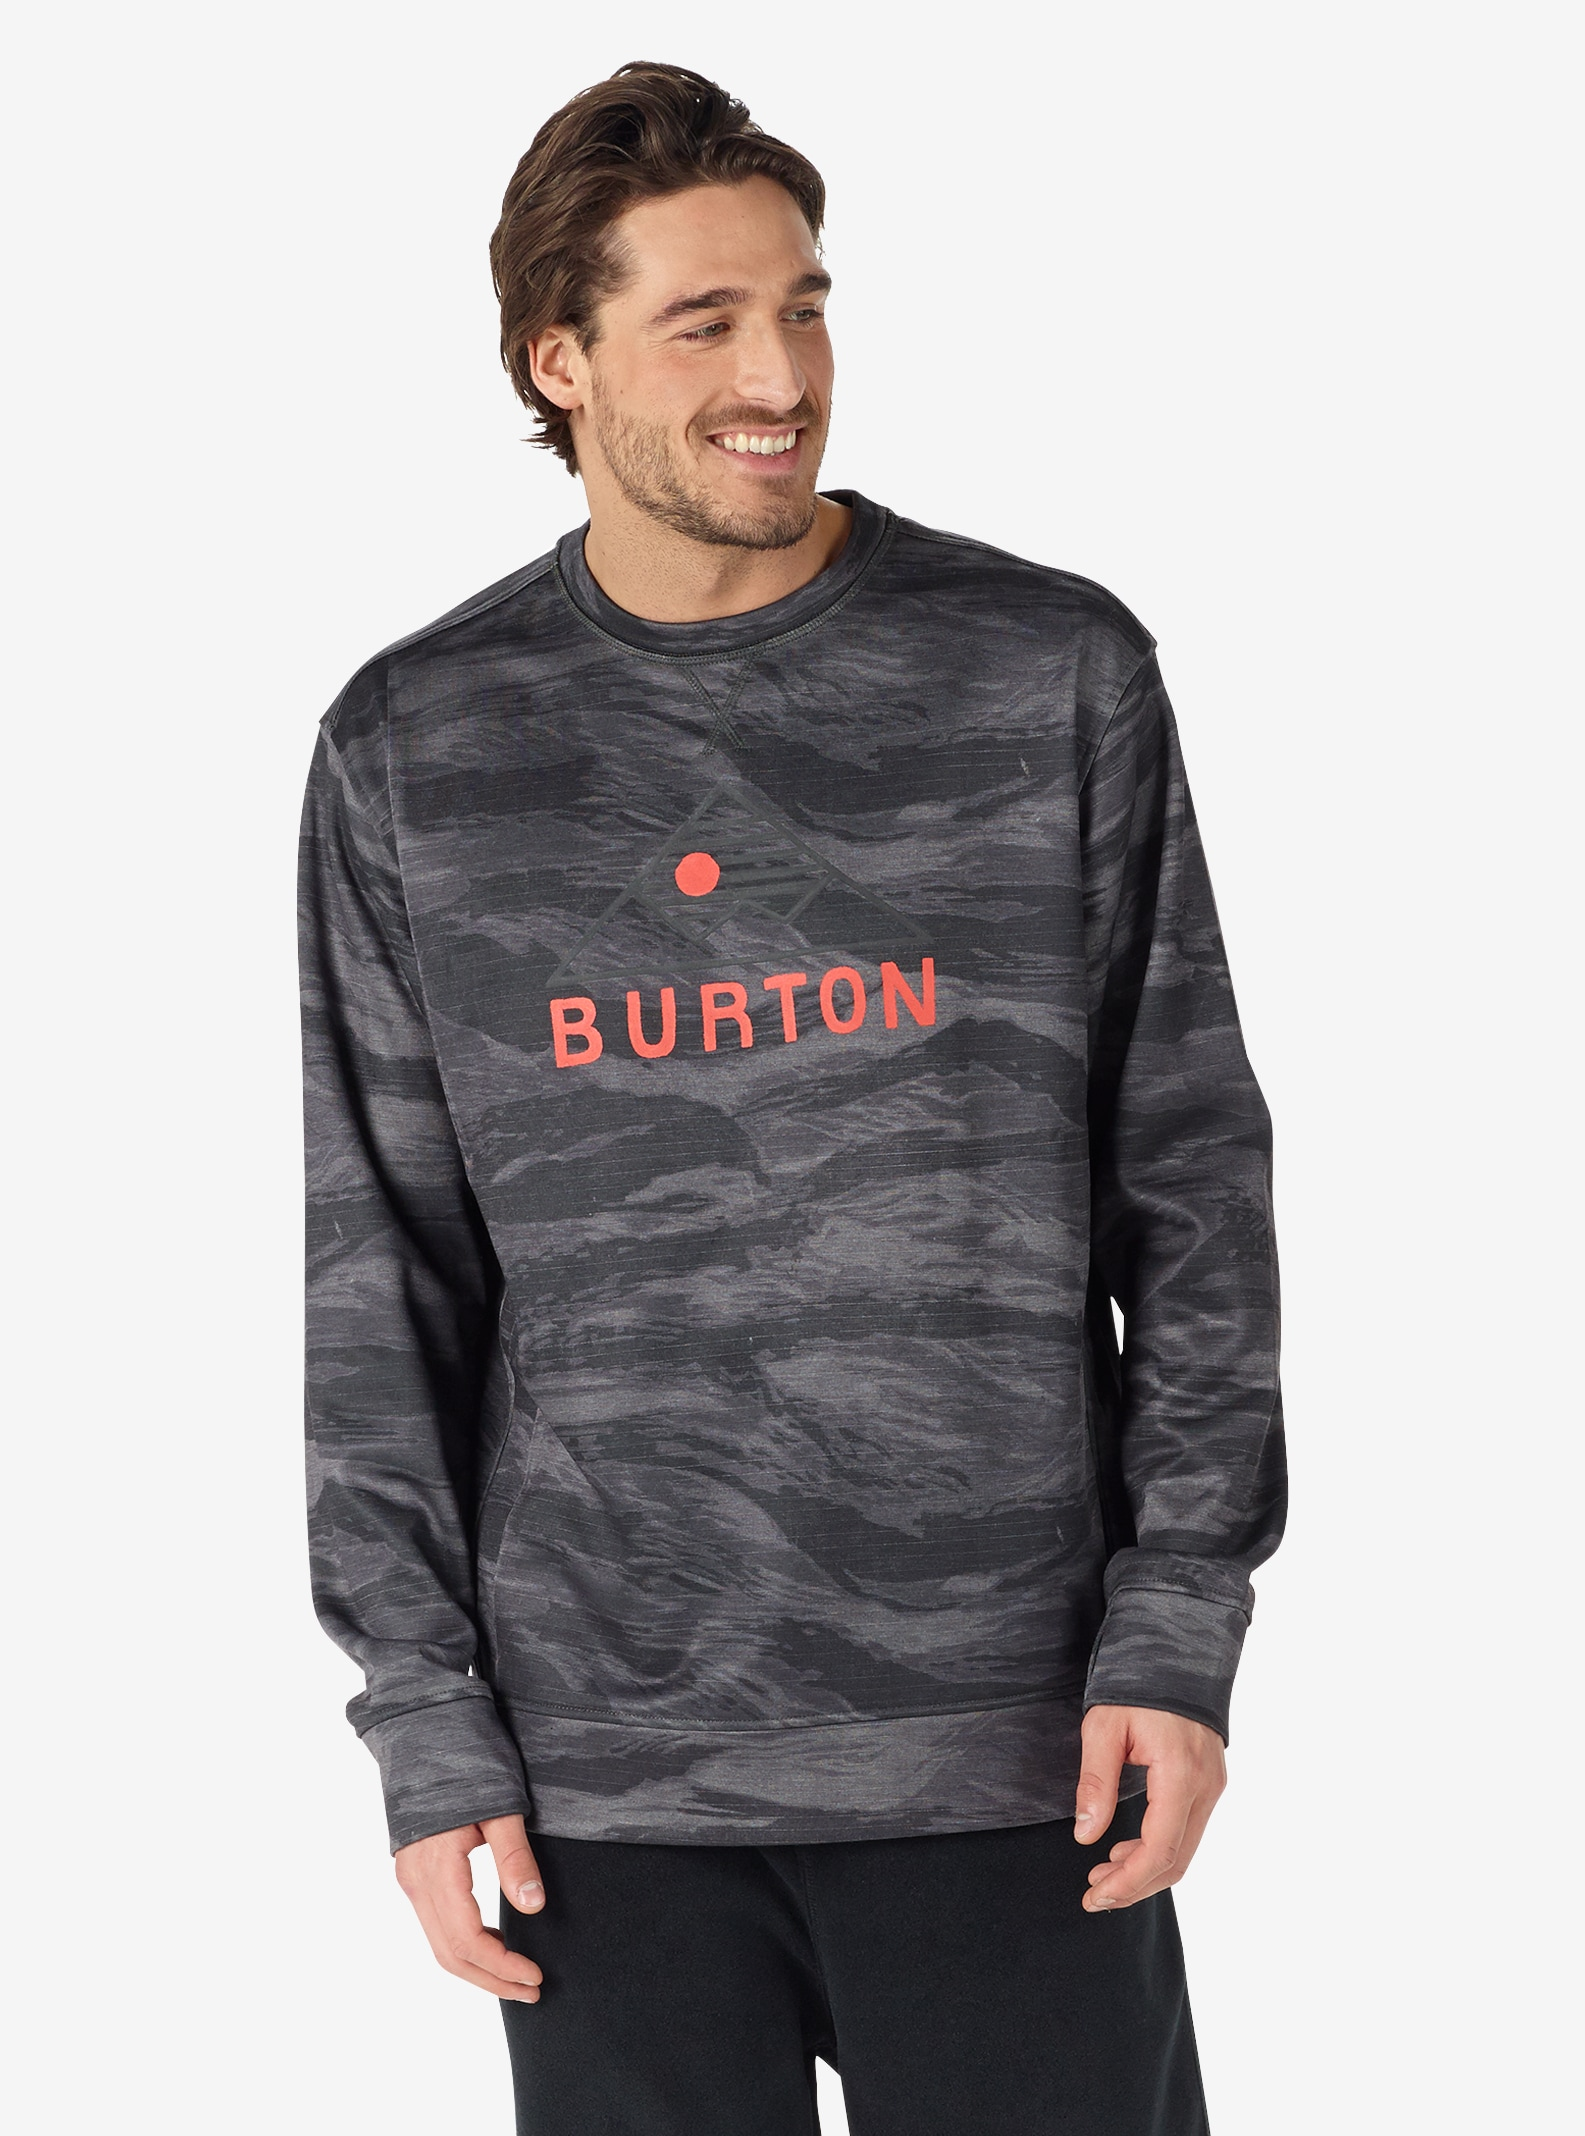 Men's Burton Oak Crew shown in Faded Worn Tiger